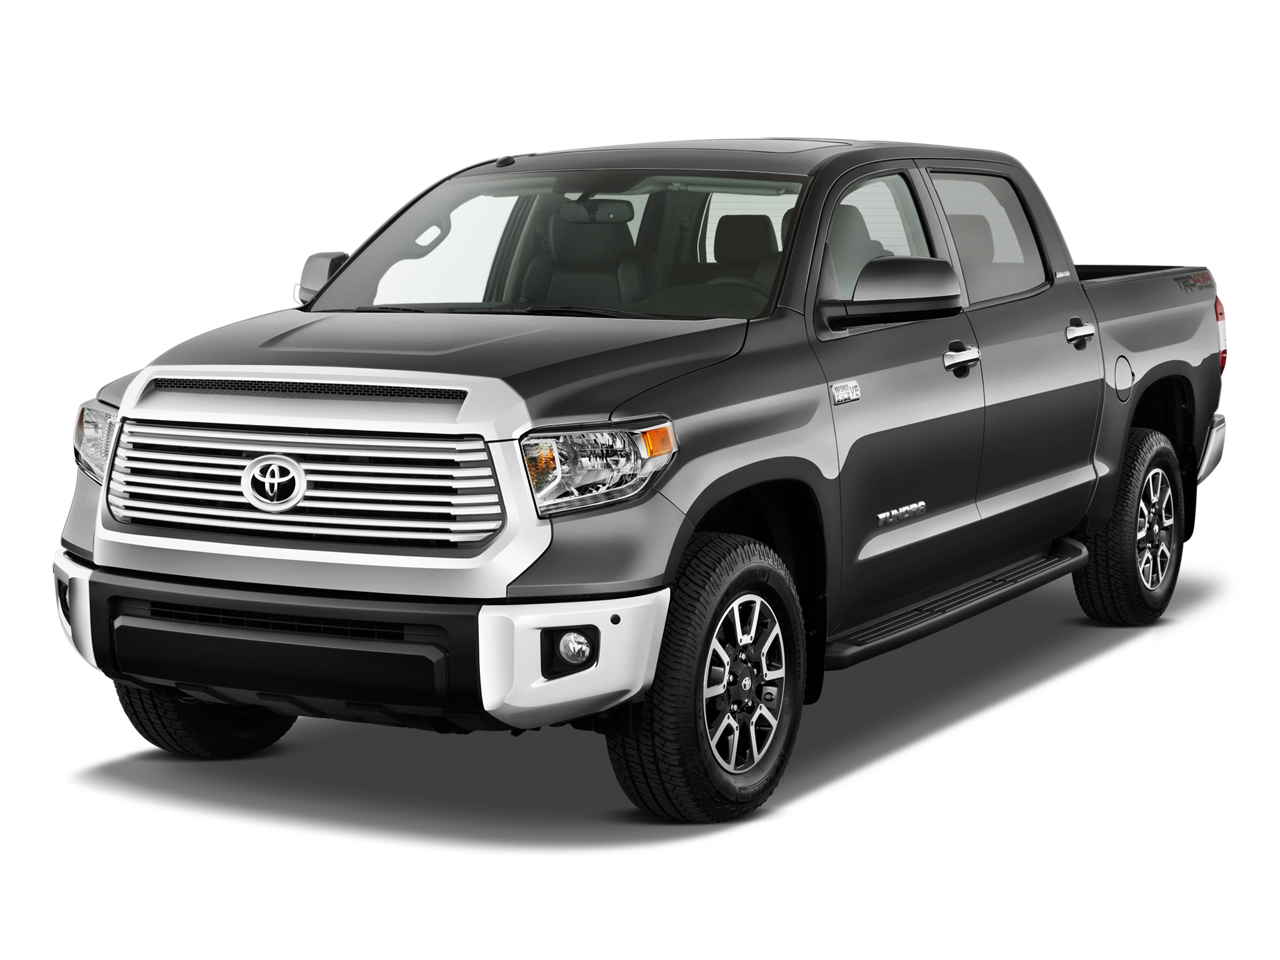 new 2017 toyota tundra limited crewmax tracy ca near dublin ca tracy toyota. Black Bedroom Furniture Sets. Home Design Ideas